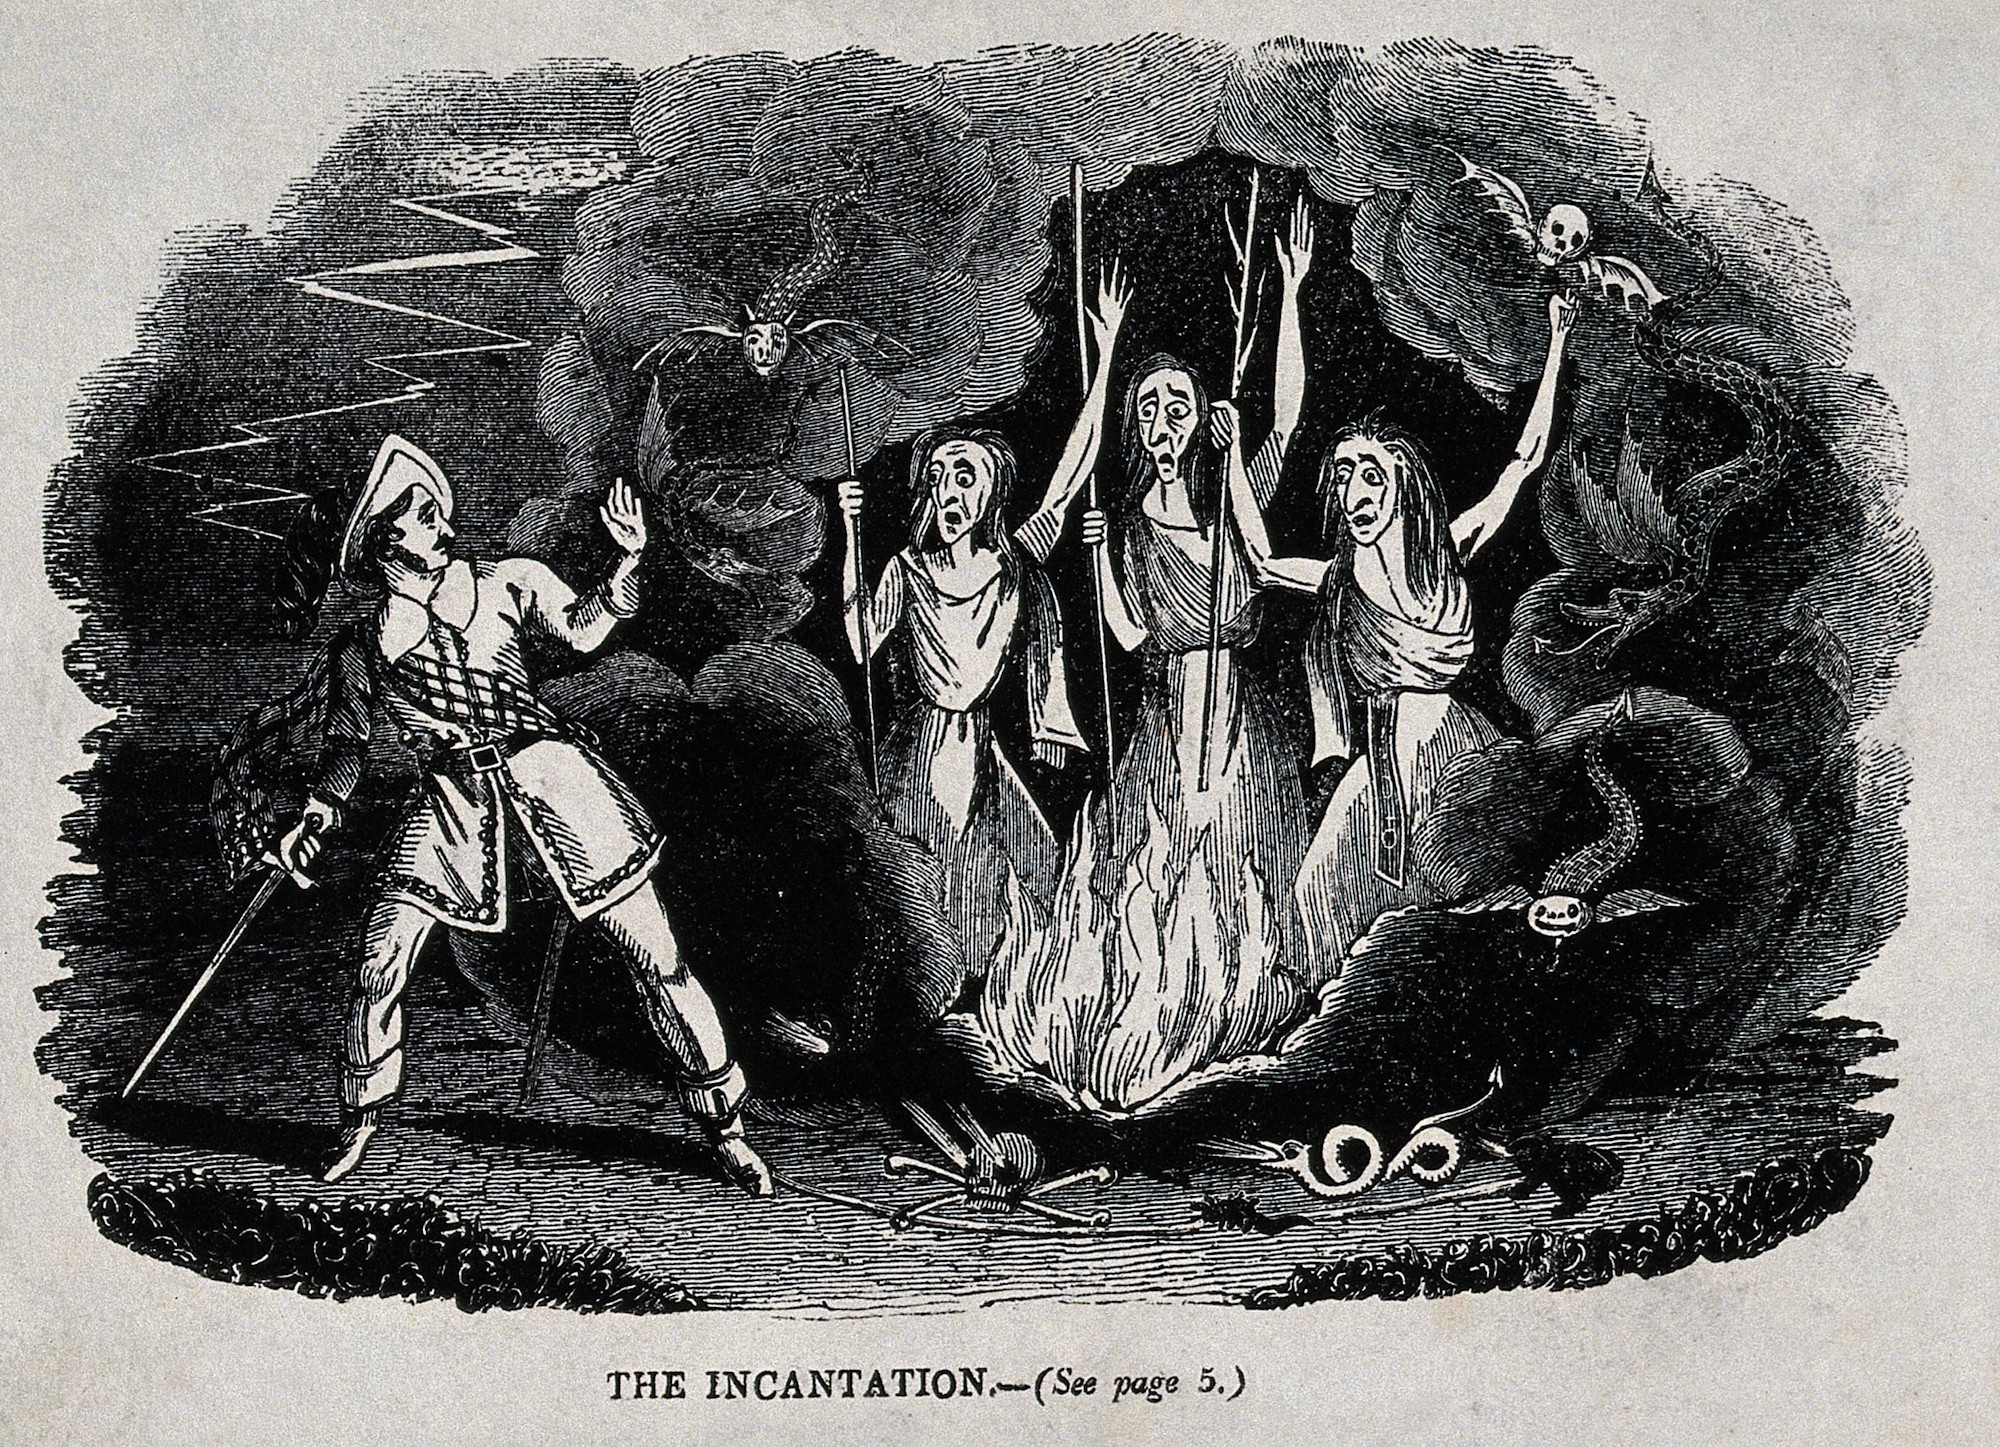 a look at lady macbeths actions parallel to the witches in macbeth Macbeths downfall in the beginning of the play macbeth, macbeth is a successful and noble thane of glamis the witches tell macbeth prophecies that guide him to his downfall, but in the end it was his own selfish decisions that caused his demise.